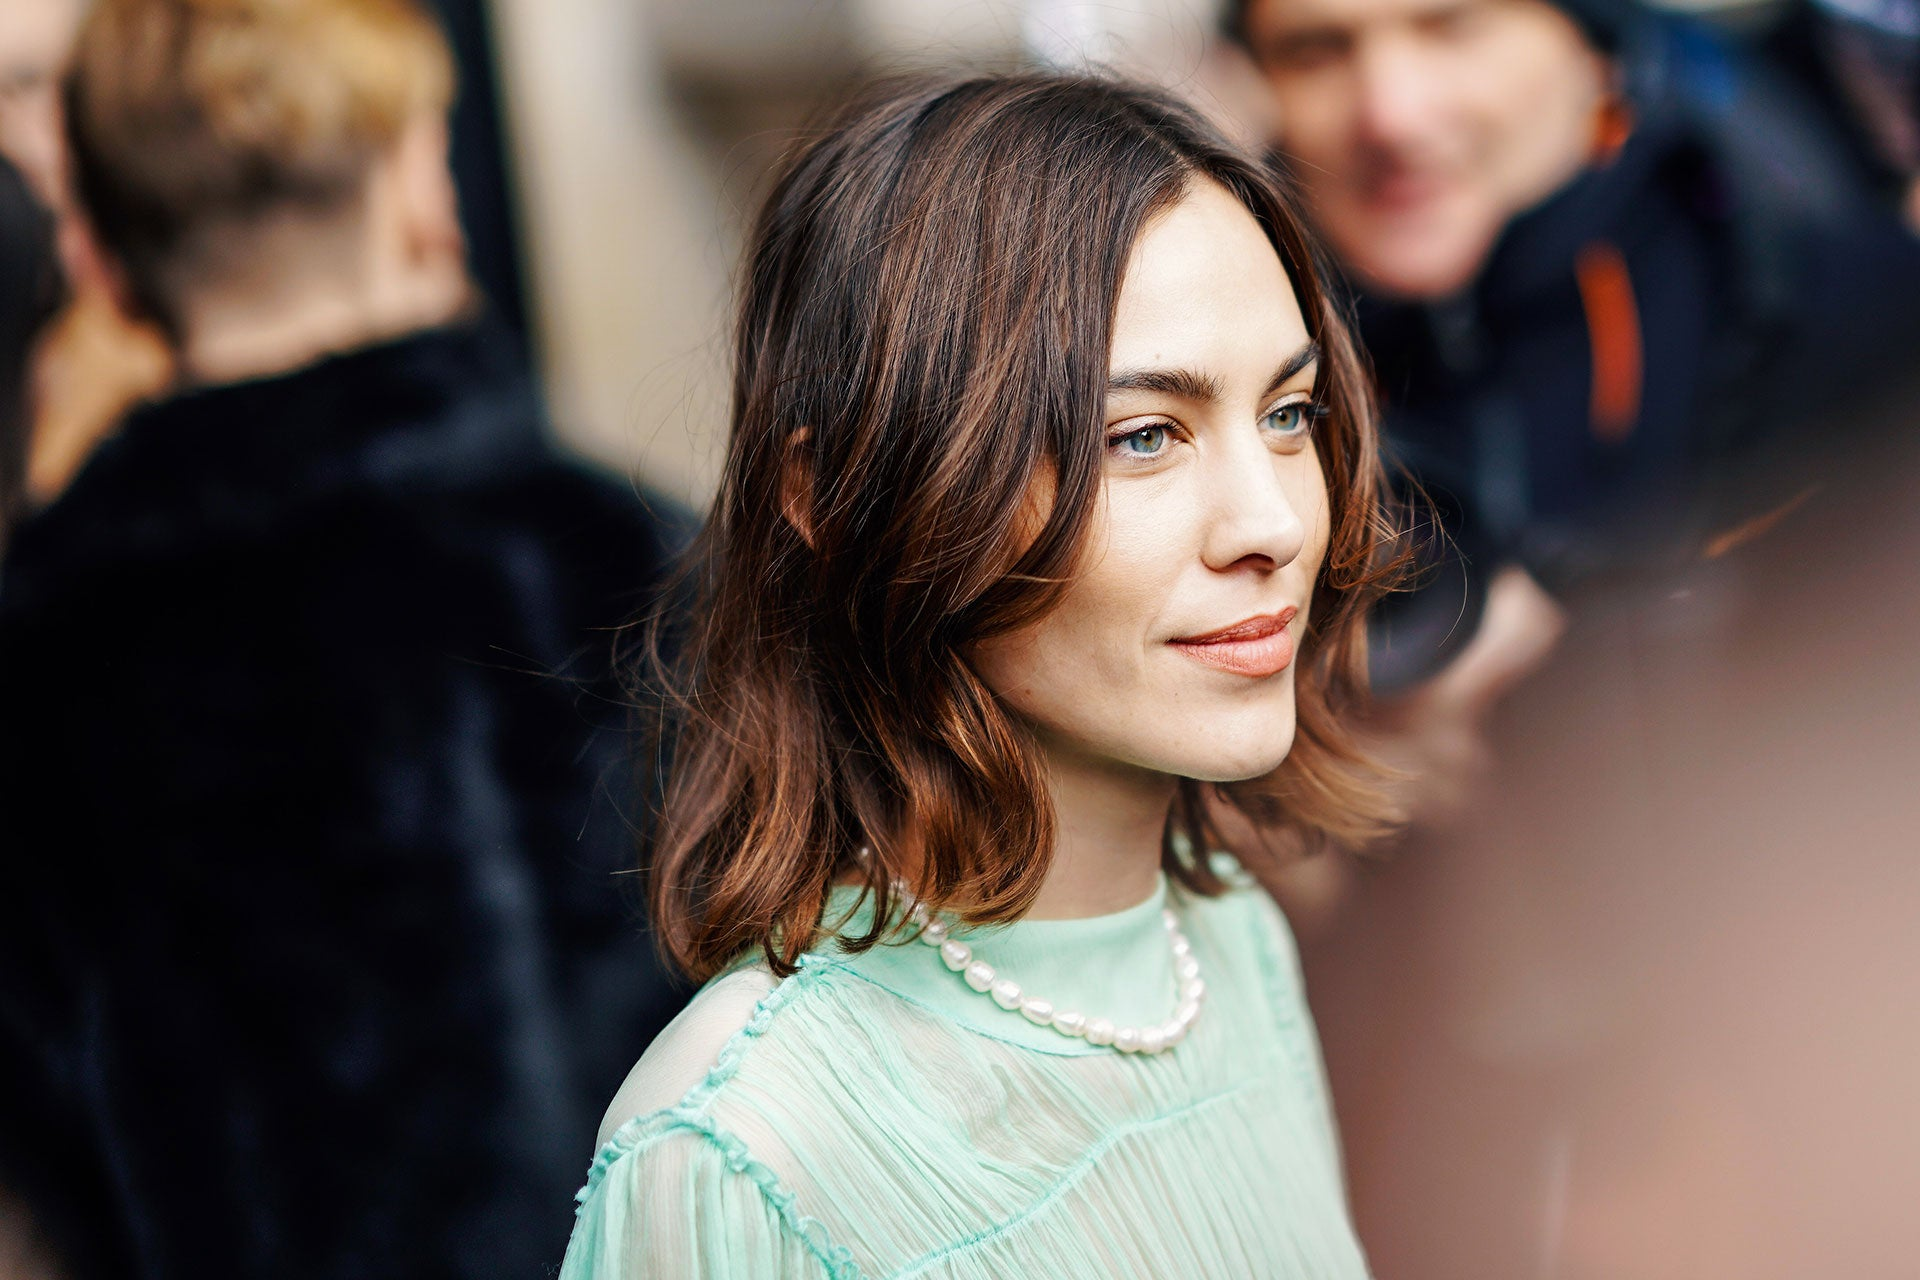 Alexa Chung po přehlídce kolekce Stella McCartney AW19/20, Paris Fashion Week, březen 2019, Paříž Autor: Edward Berthelot/Getty Images